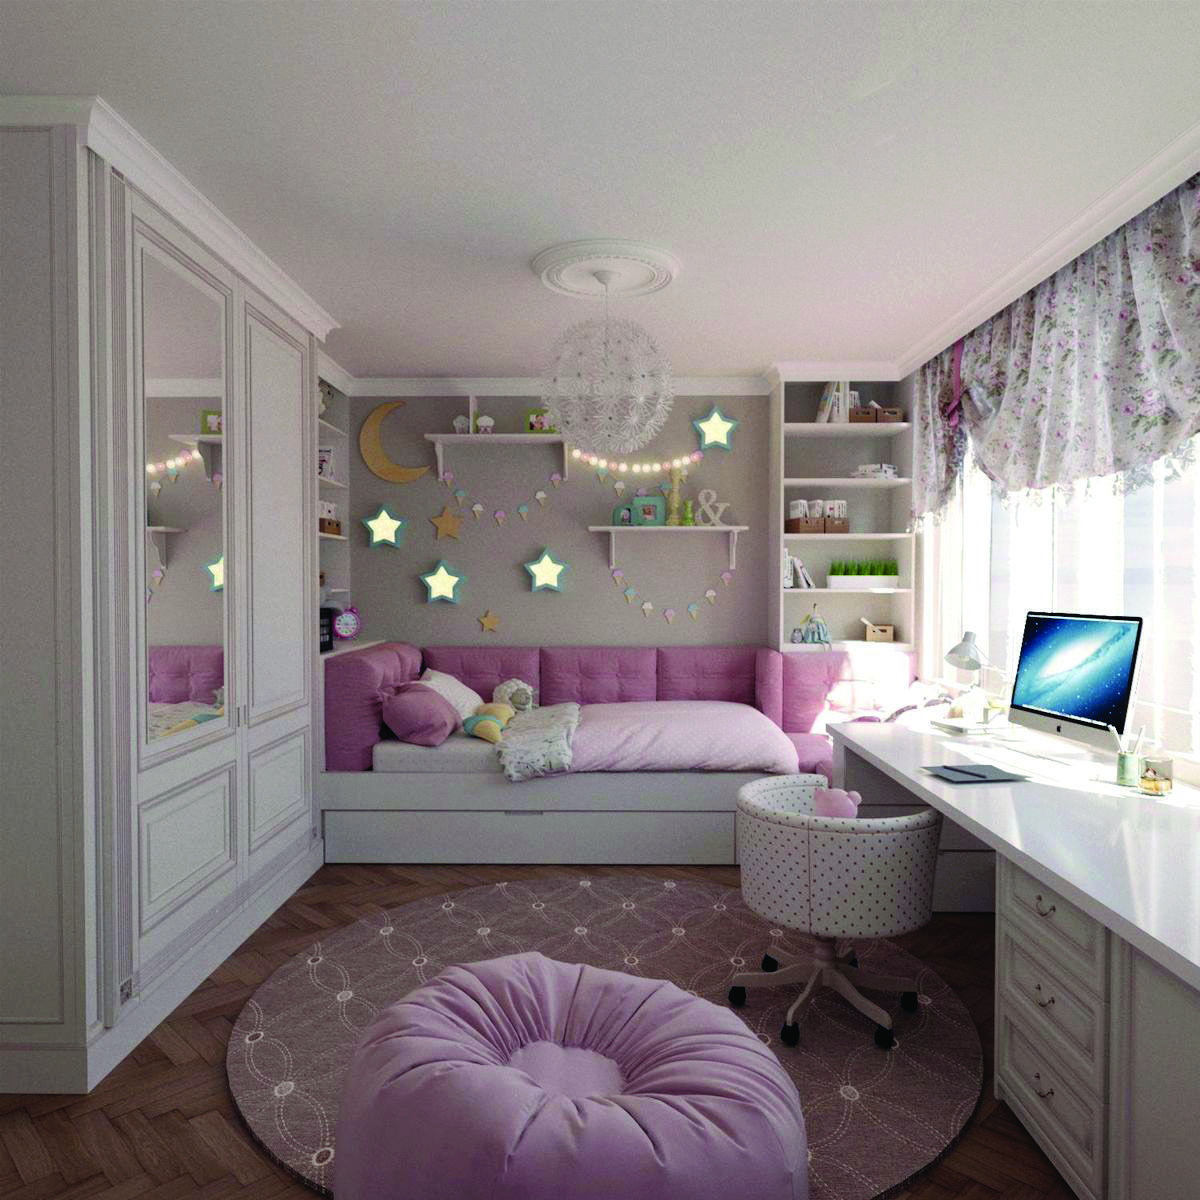 Adolescent Bedroom Ideas That Are Actually Enjoyable And Cool Homes Tre Girl Bedroom Decor Cute Bedroom Ideas Bedroom Themes